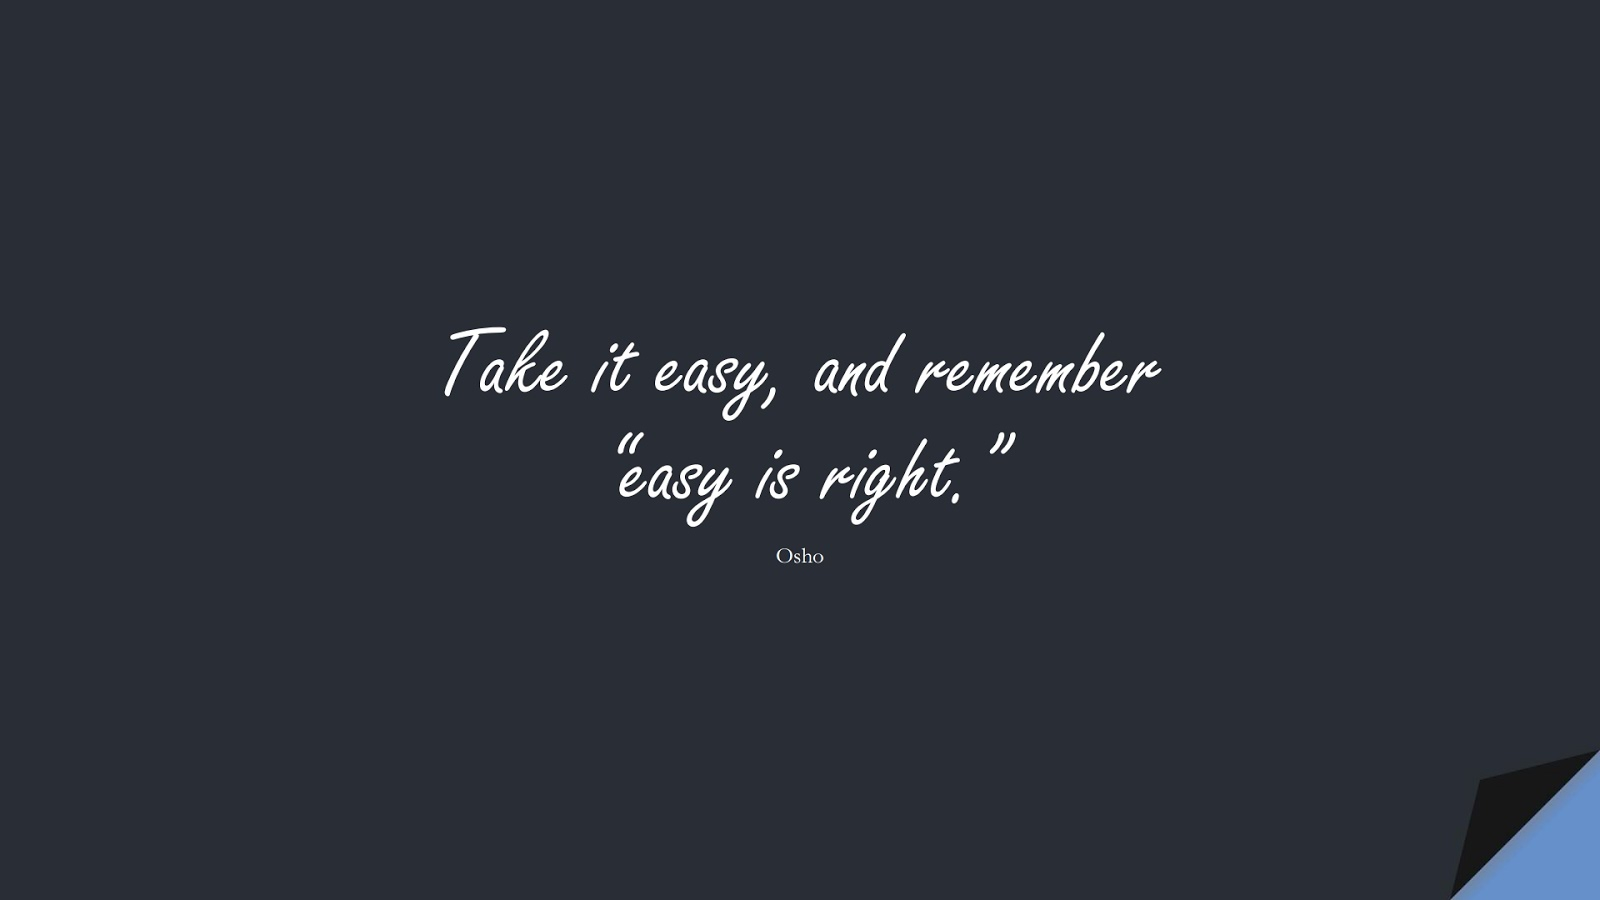 """Take it easy, and remember """"easy is right."""" (Osho);  #CalmQuotes"""